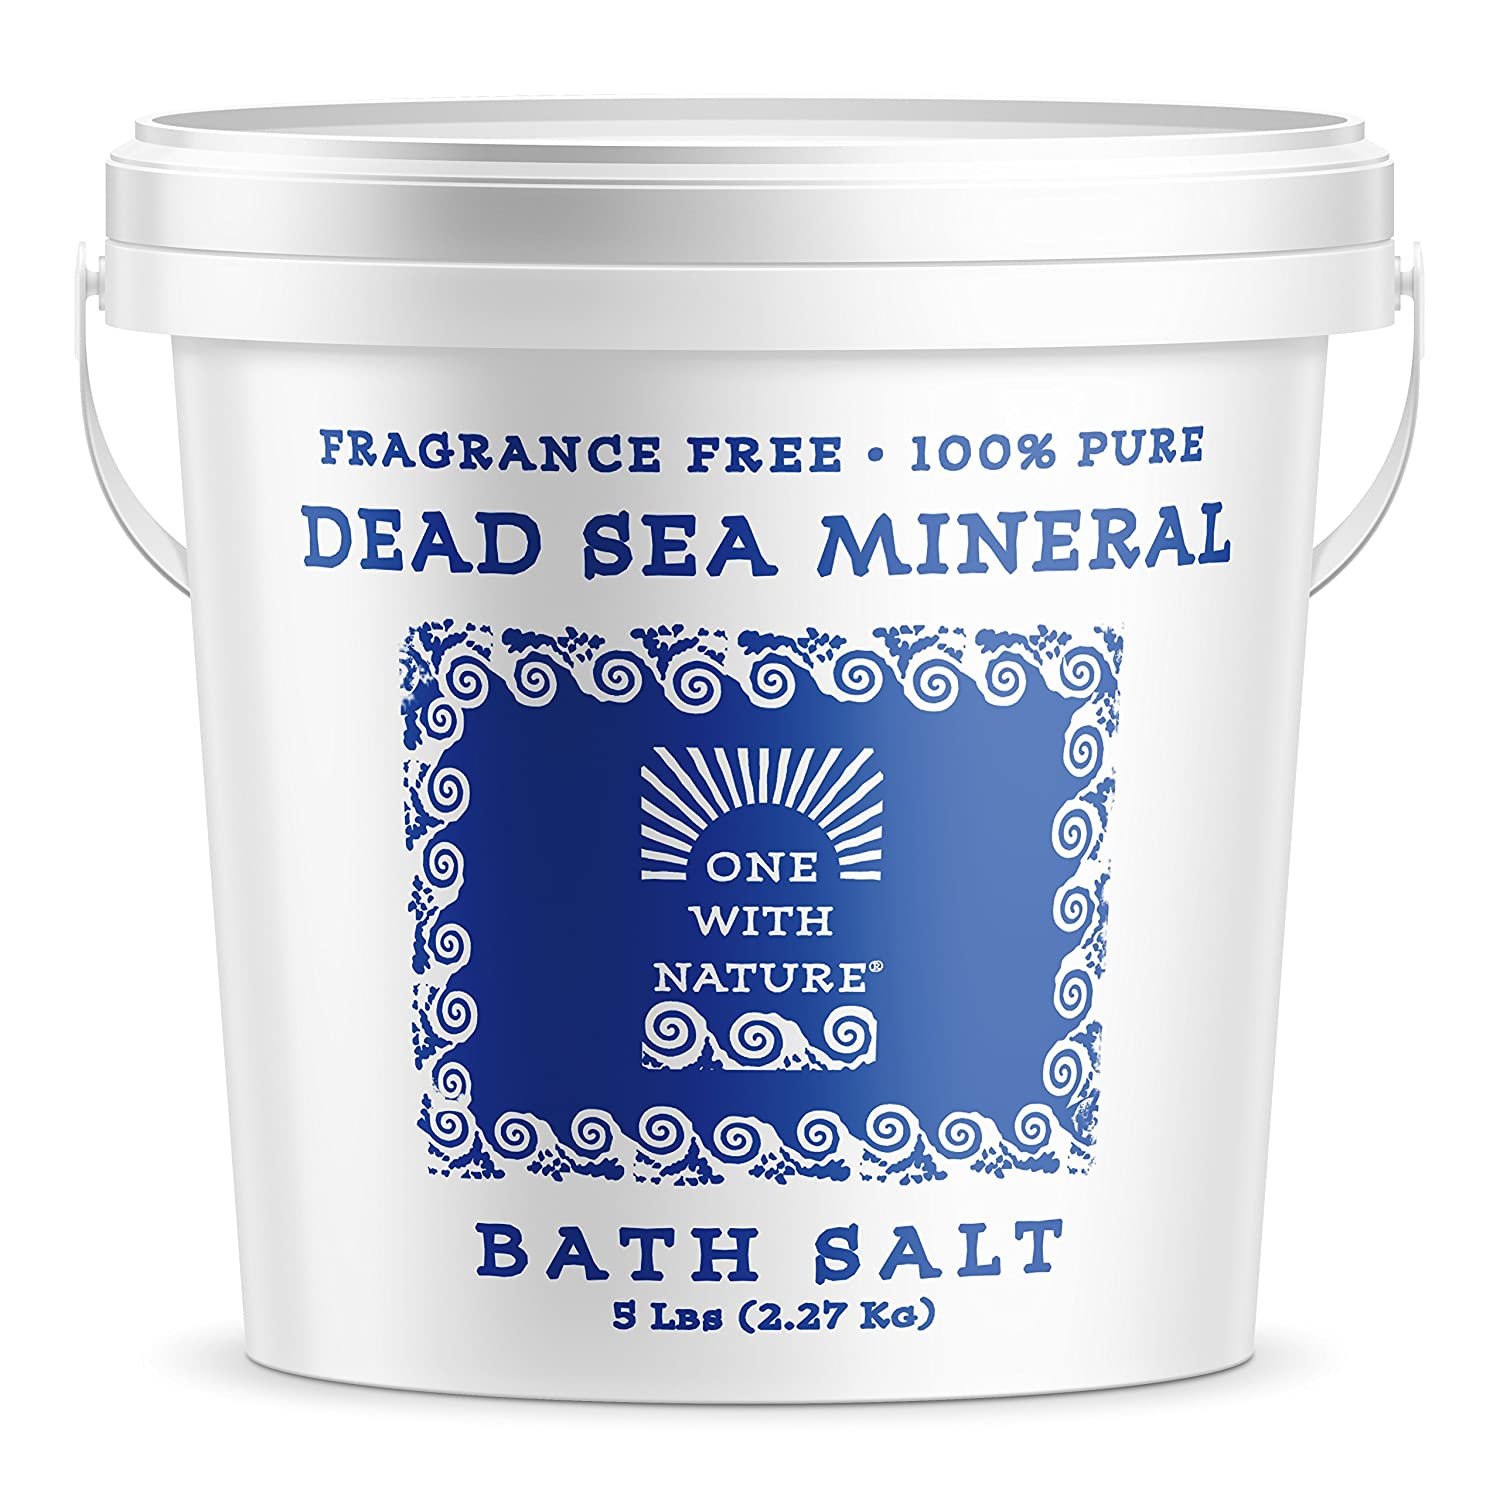 100% Pure Dead Sea Mineral Bath Salt 5Lb Frag Free